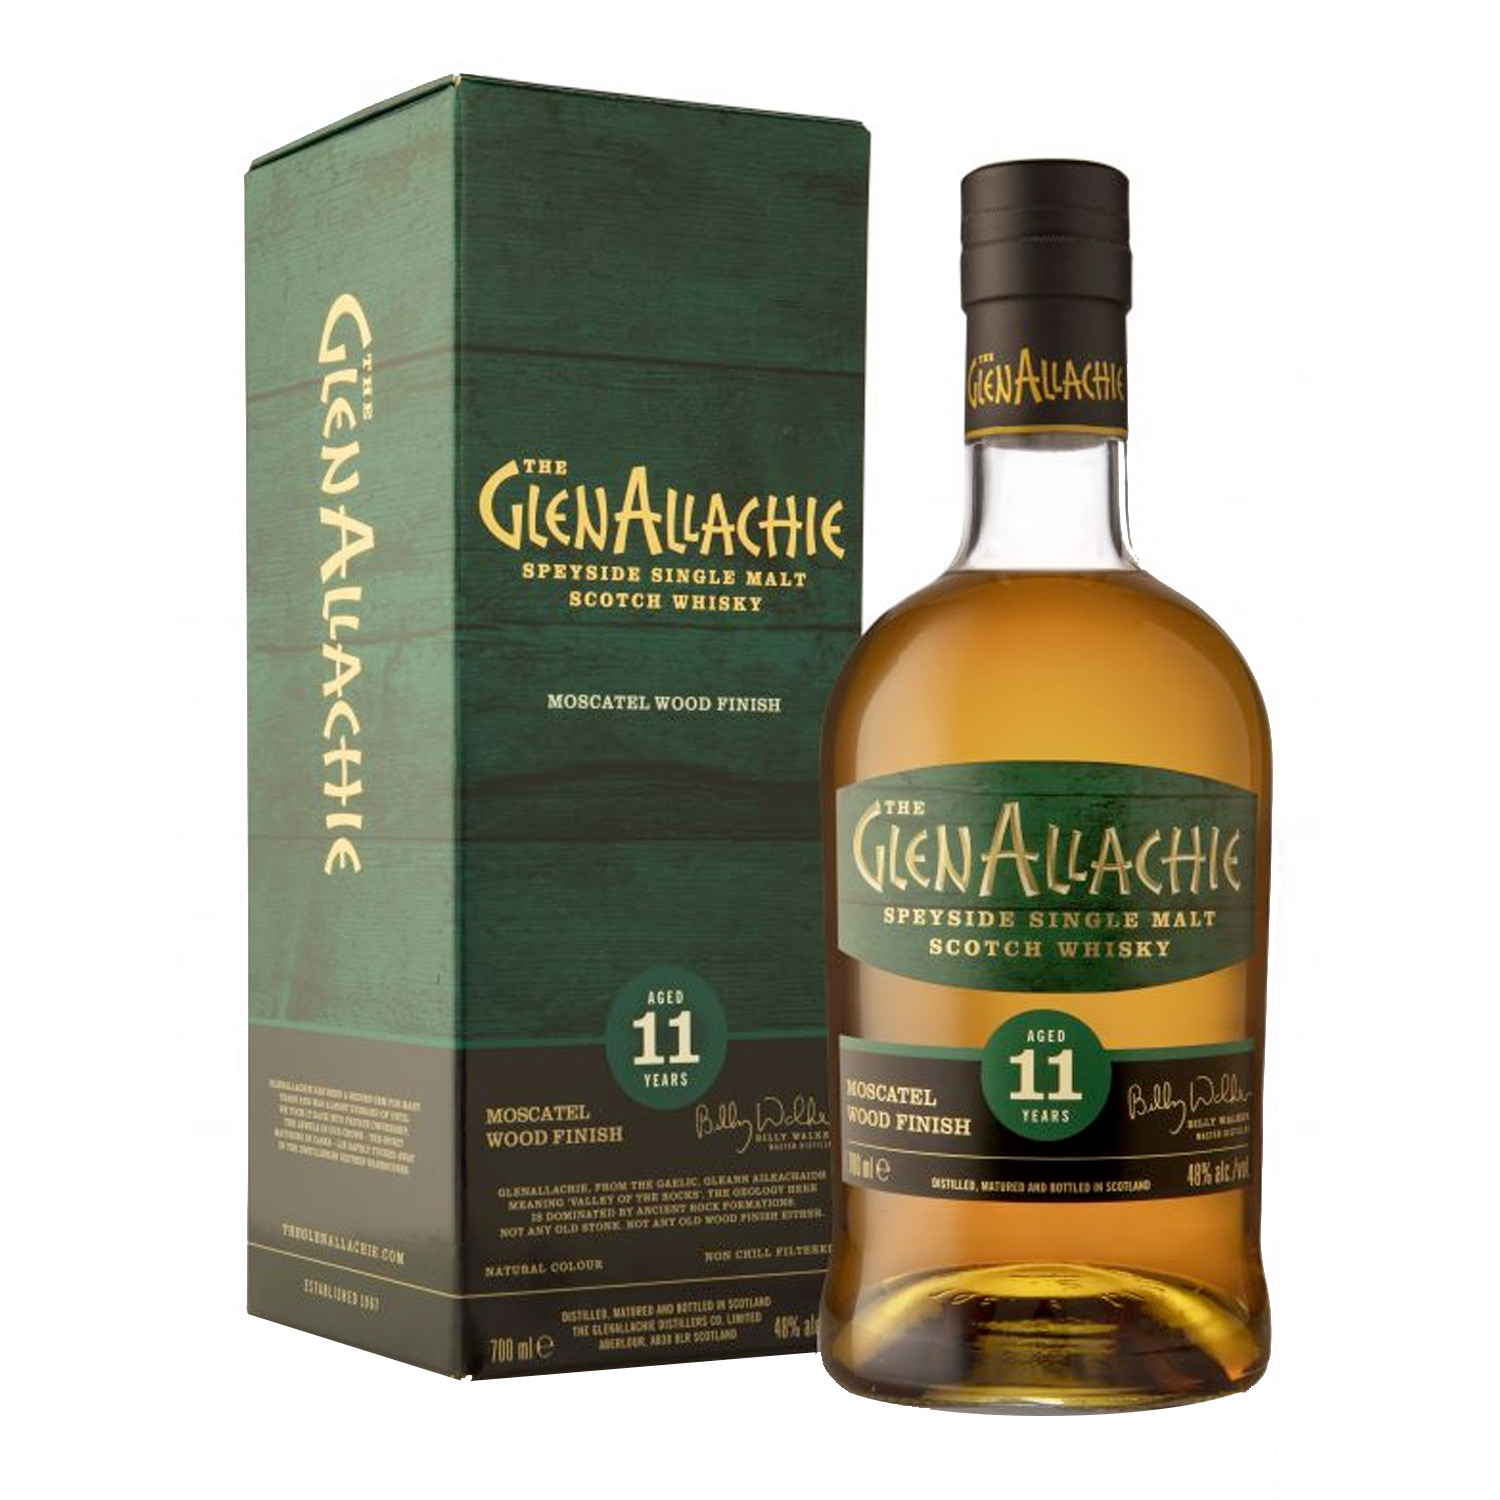 Whisky - GlenAllachie - 11 y Moscatel Wood Finish - Ecosse - Single Malt - Non Tourbé - 70 cl - 48°